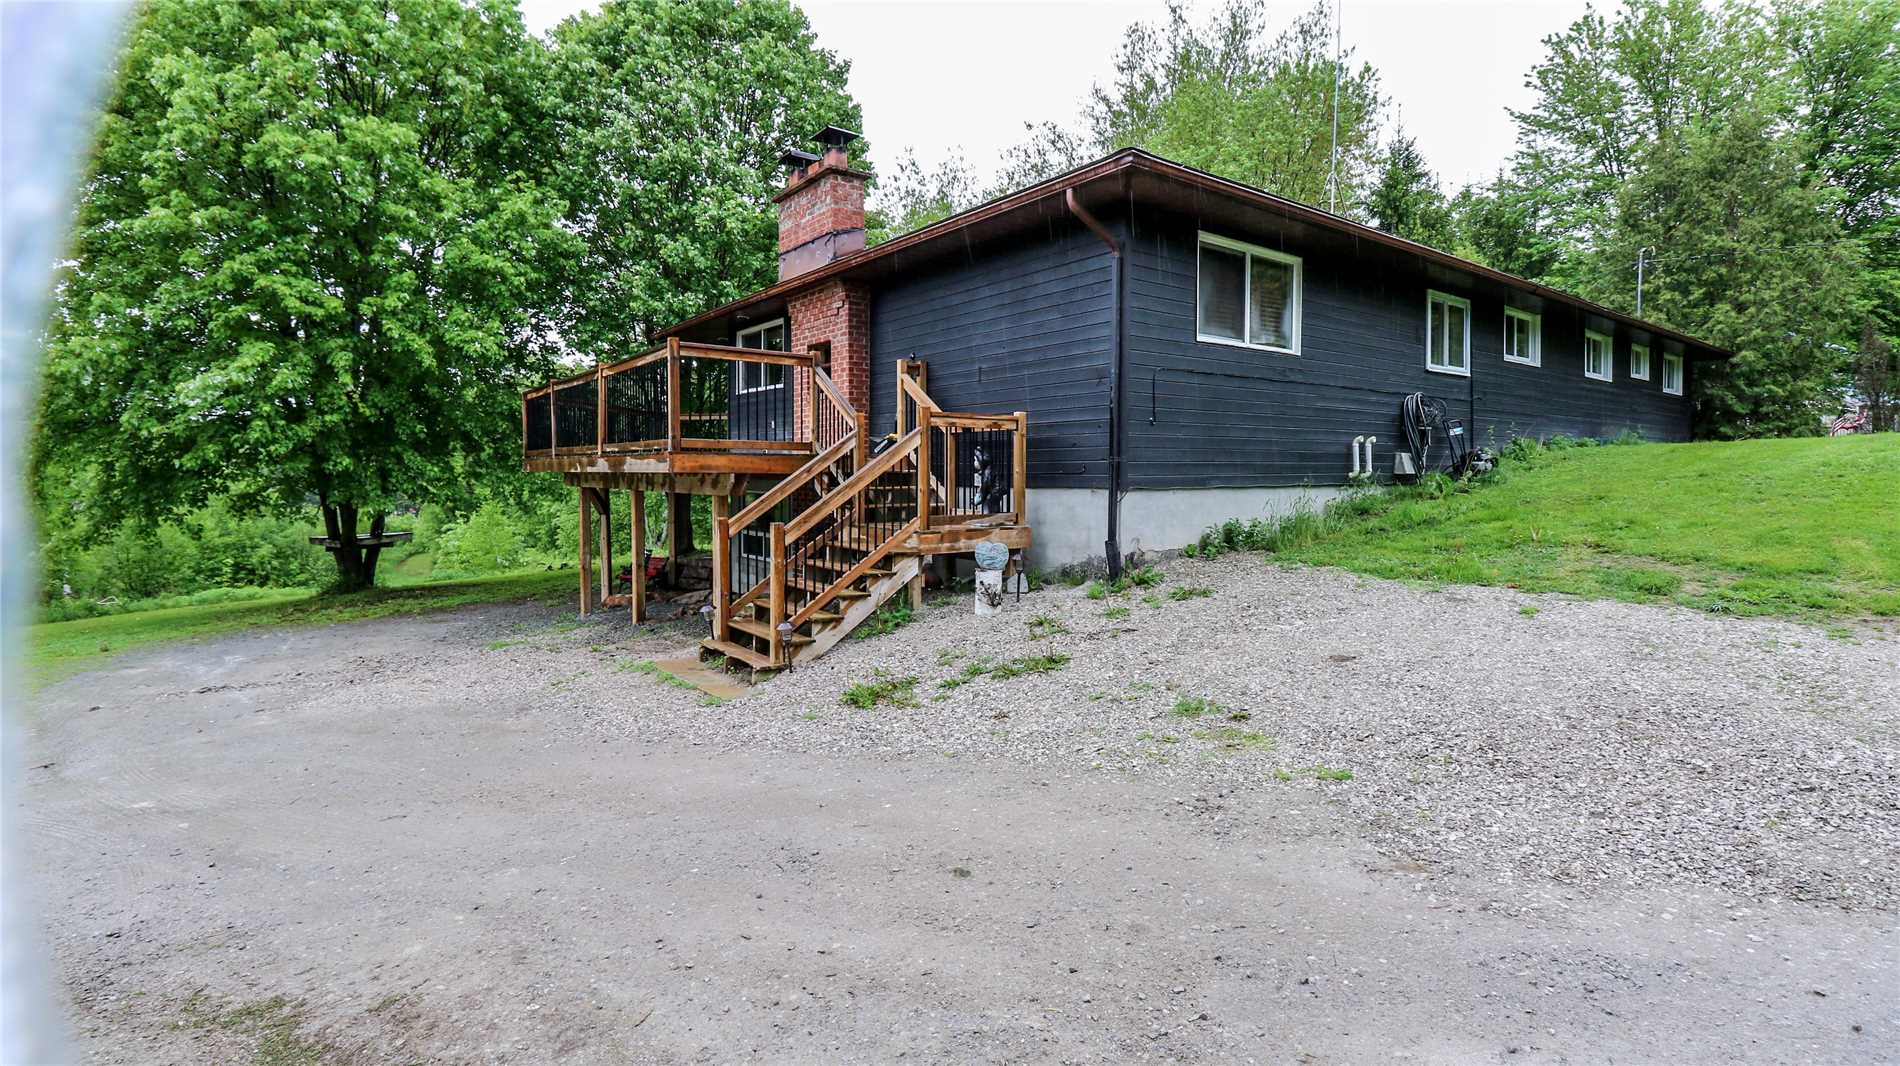 Rare 3 Acre Property On 245 Ft Of Waterfront!  Located Just Outside Washago, This Open Concept Home Has Been Recently Renovated From Top To Bottom. Home Features An Updated Kitchen, Sunken Living Room And Large Family Room With Fireplace.  Enjoy The Best Of Outdoor Living On A Massive Wrap Around Deck, Relaxing On The River Or Tinkering In The Large Insulated Garage. Close To Groomed Snowmobile Trails, Fishing, And Canoeing Come Visit This One Of A Kind Home.